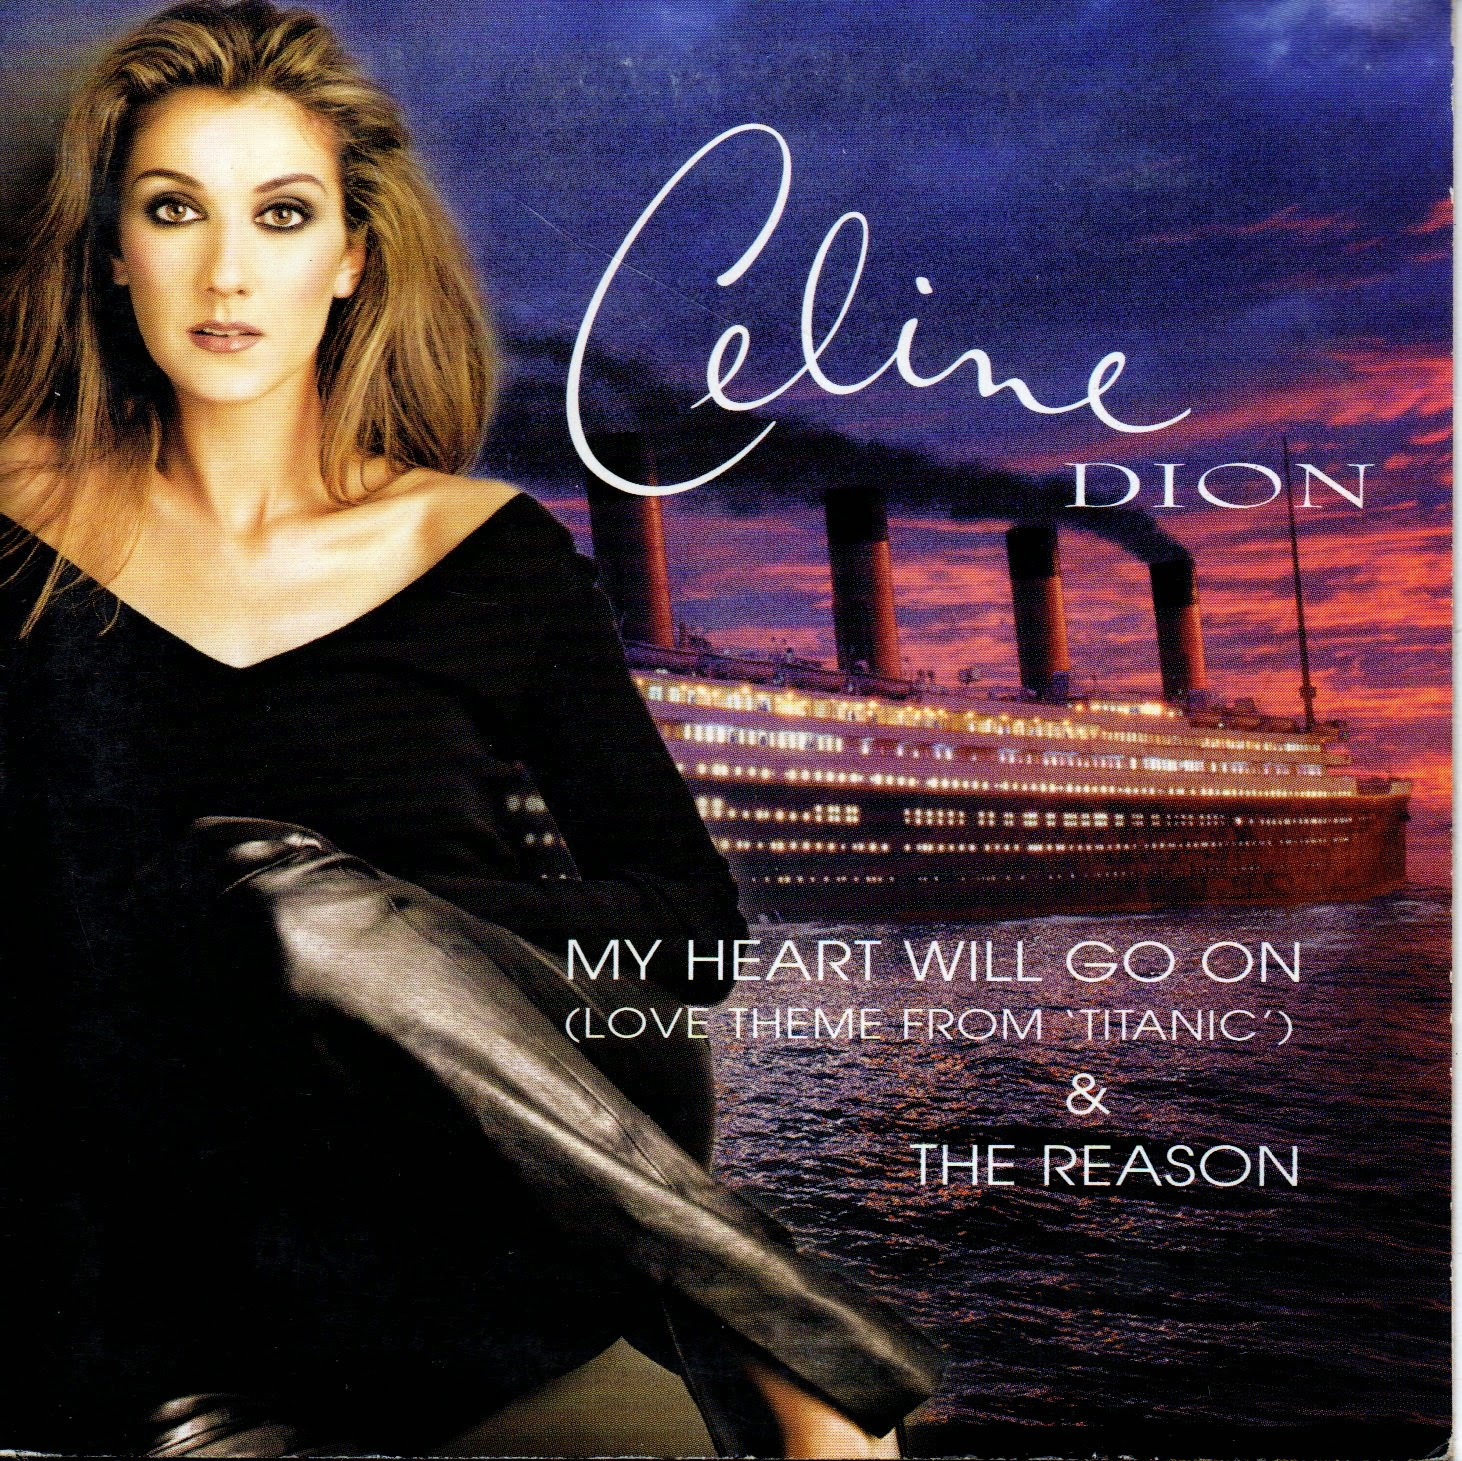 Celine Dion - My Heart Will Go On - TheLiriks